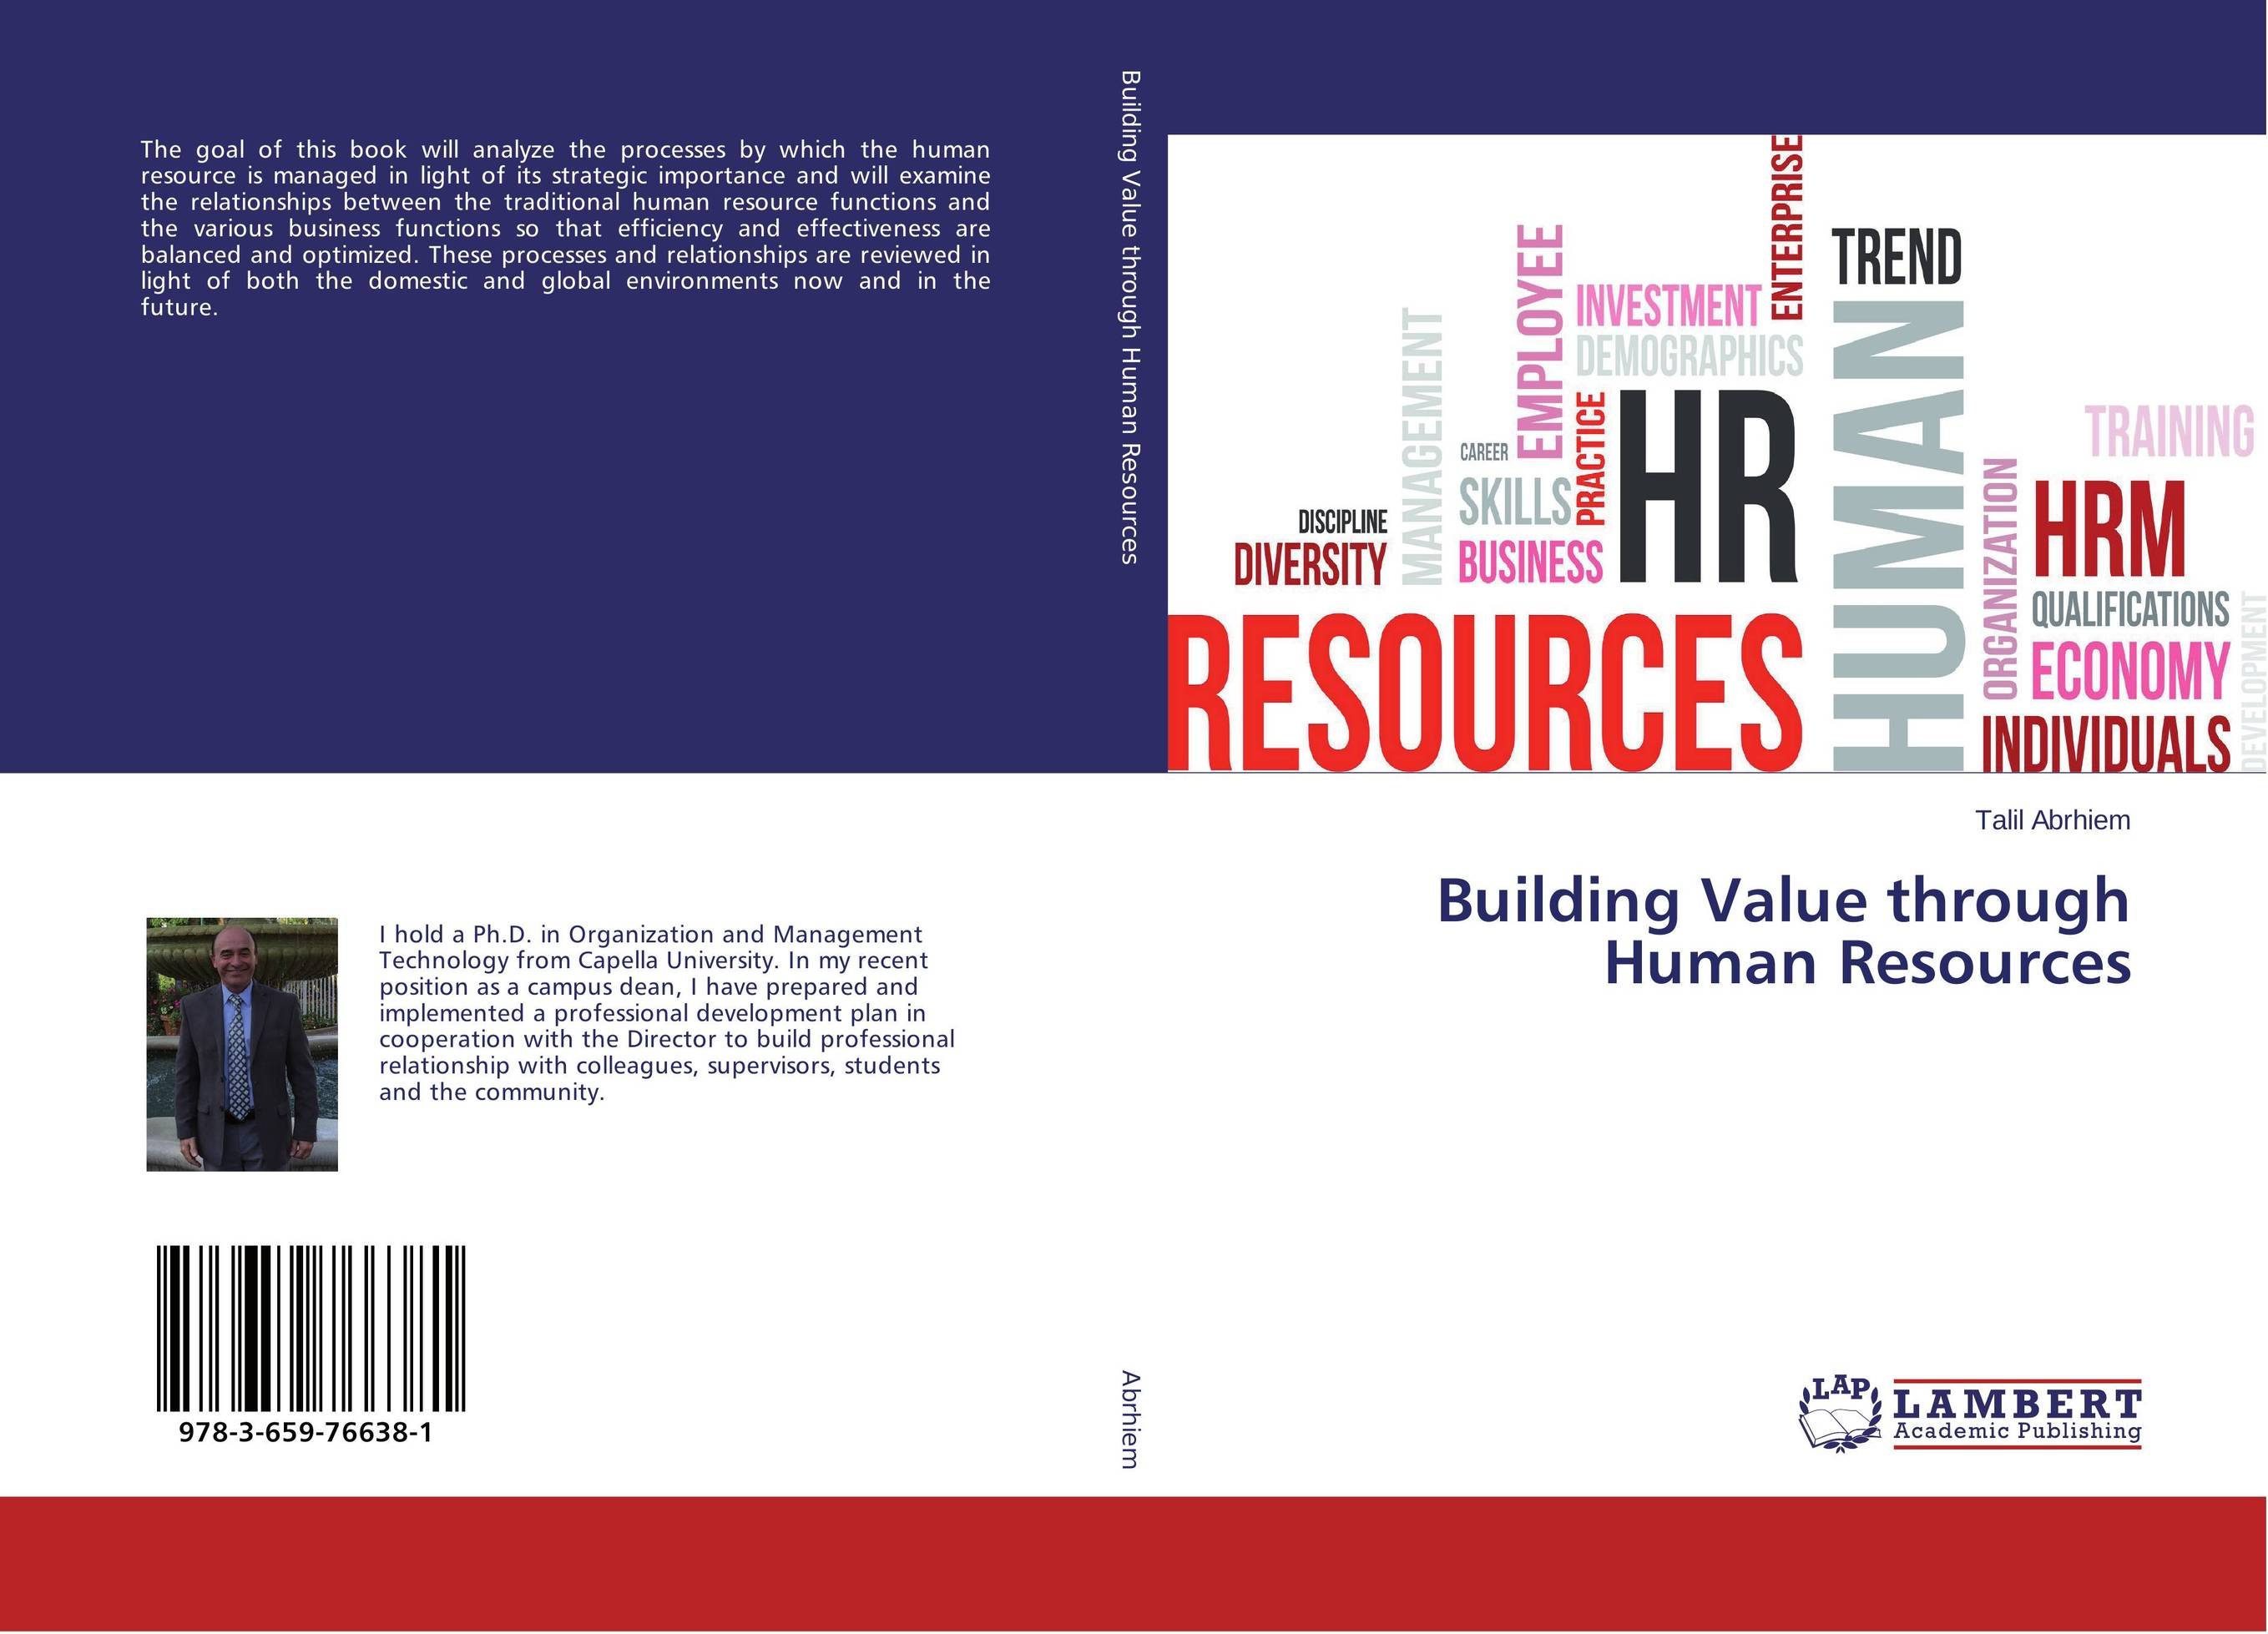 Building Value through Human Resources